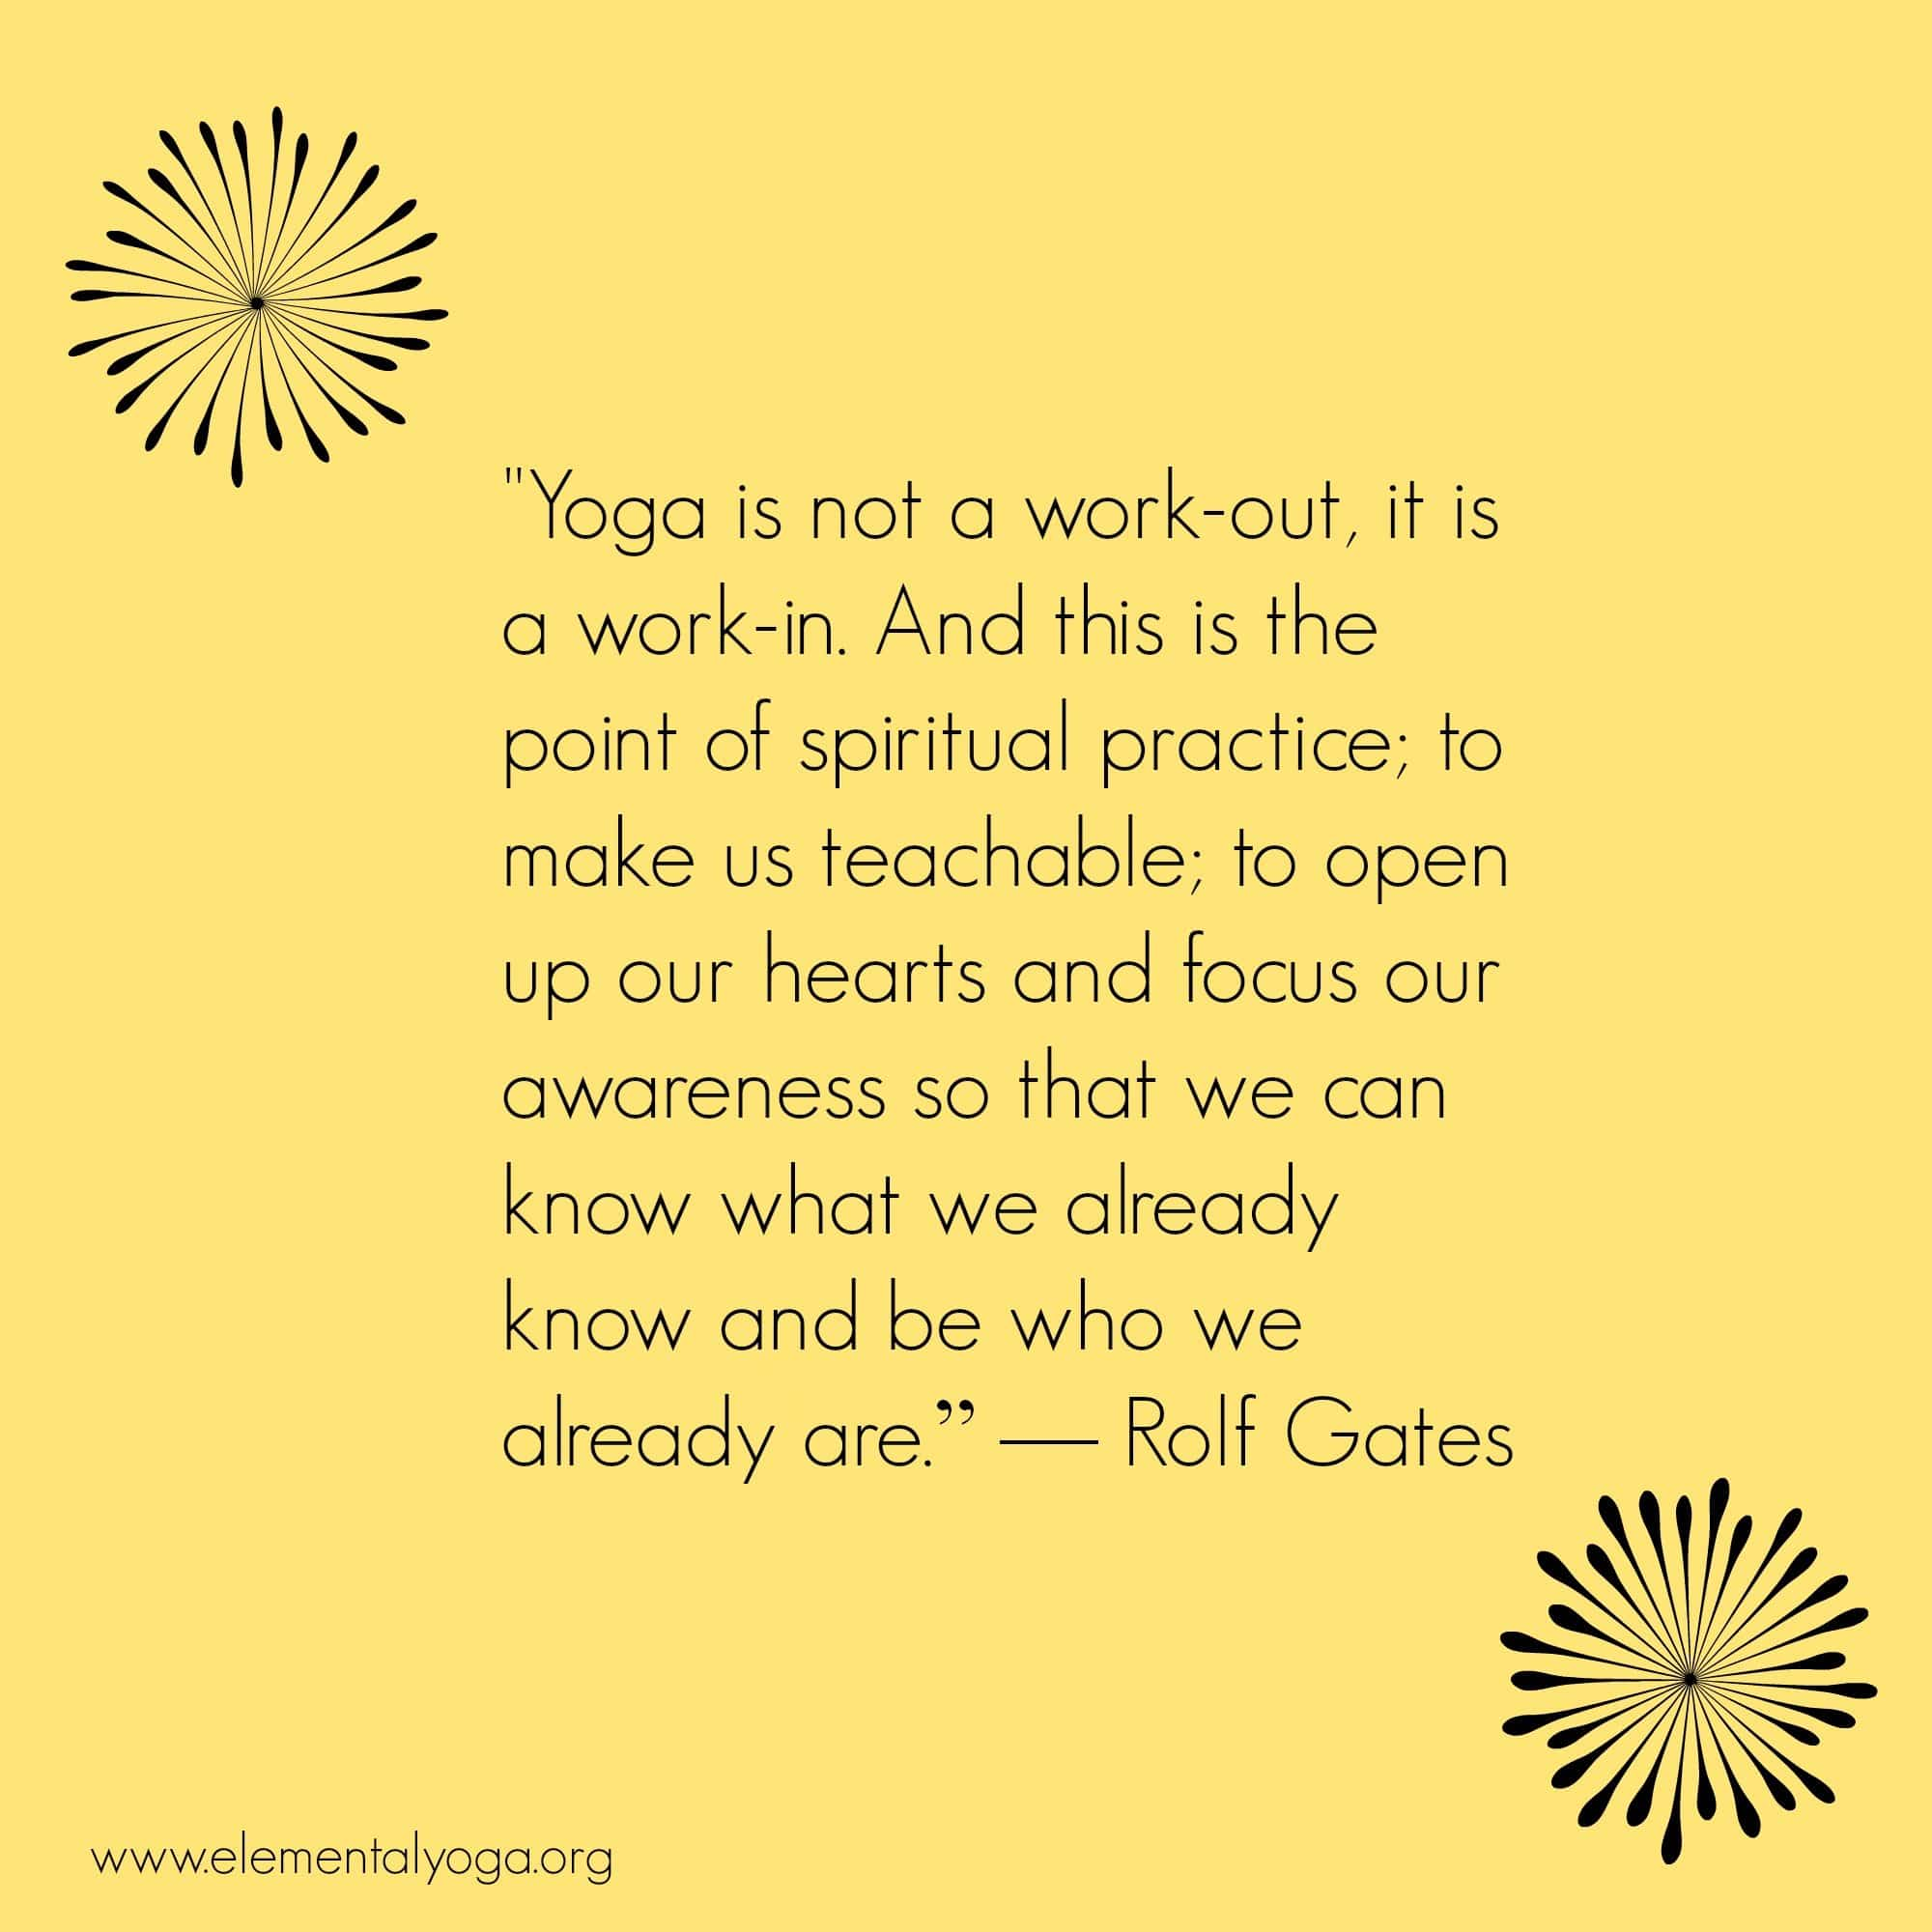 yoga quotes inspiration - photo #18